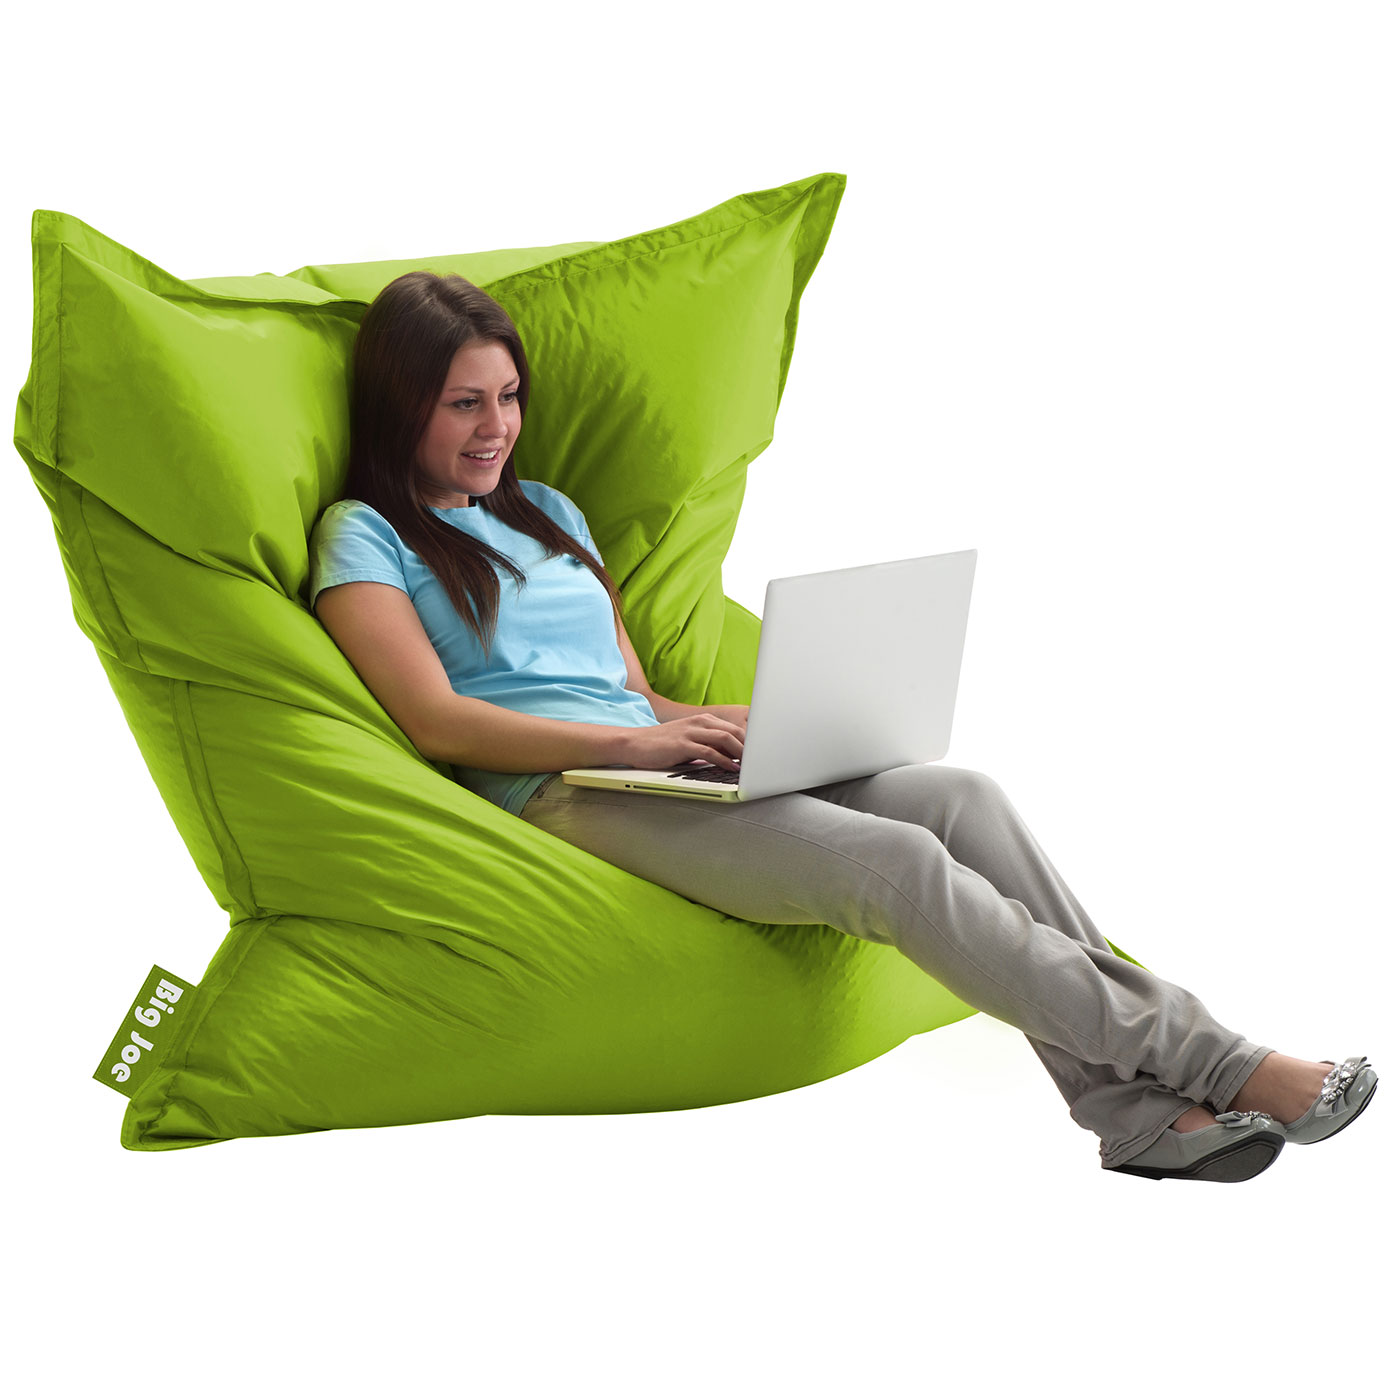 Comfort Research Big Joe Original SmartMax Bean Bag Chair In Spicy Lime FREE SHIPPING